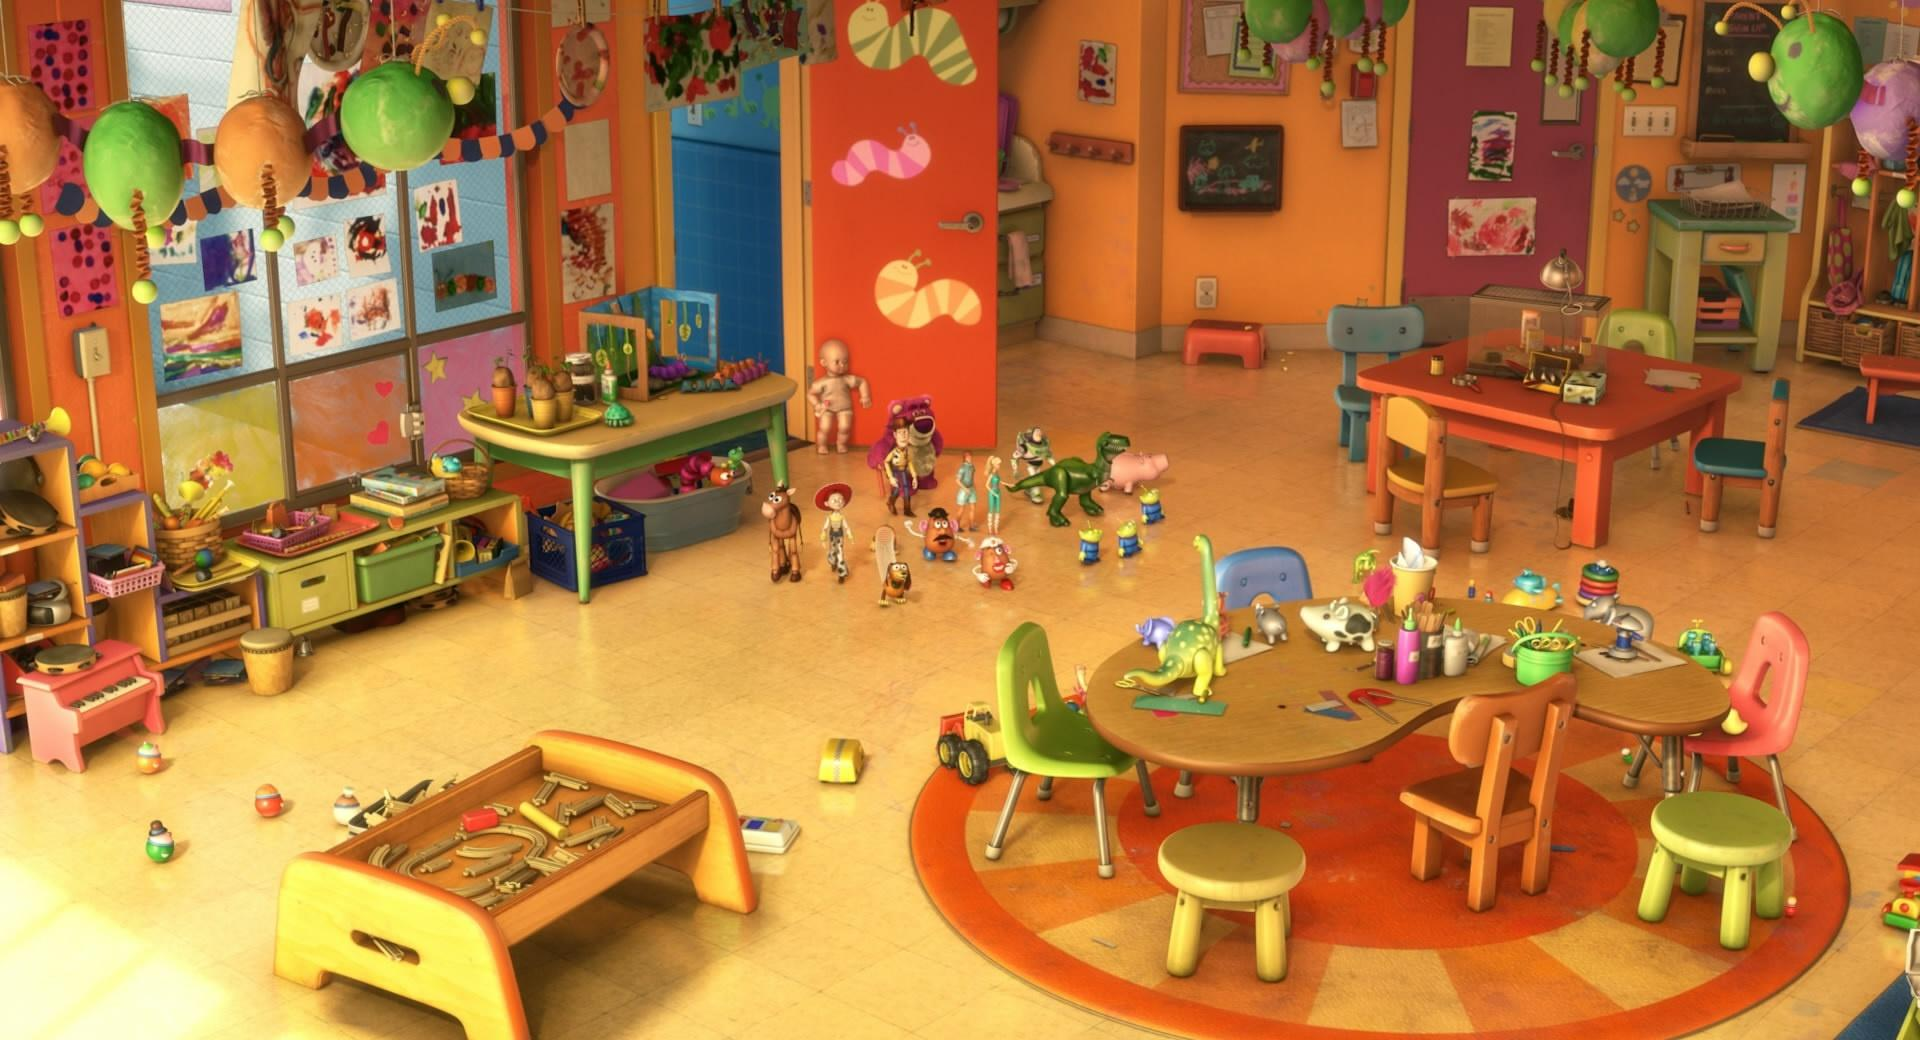 Toy Story 3 Kindergarten wallpapers HD quality